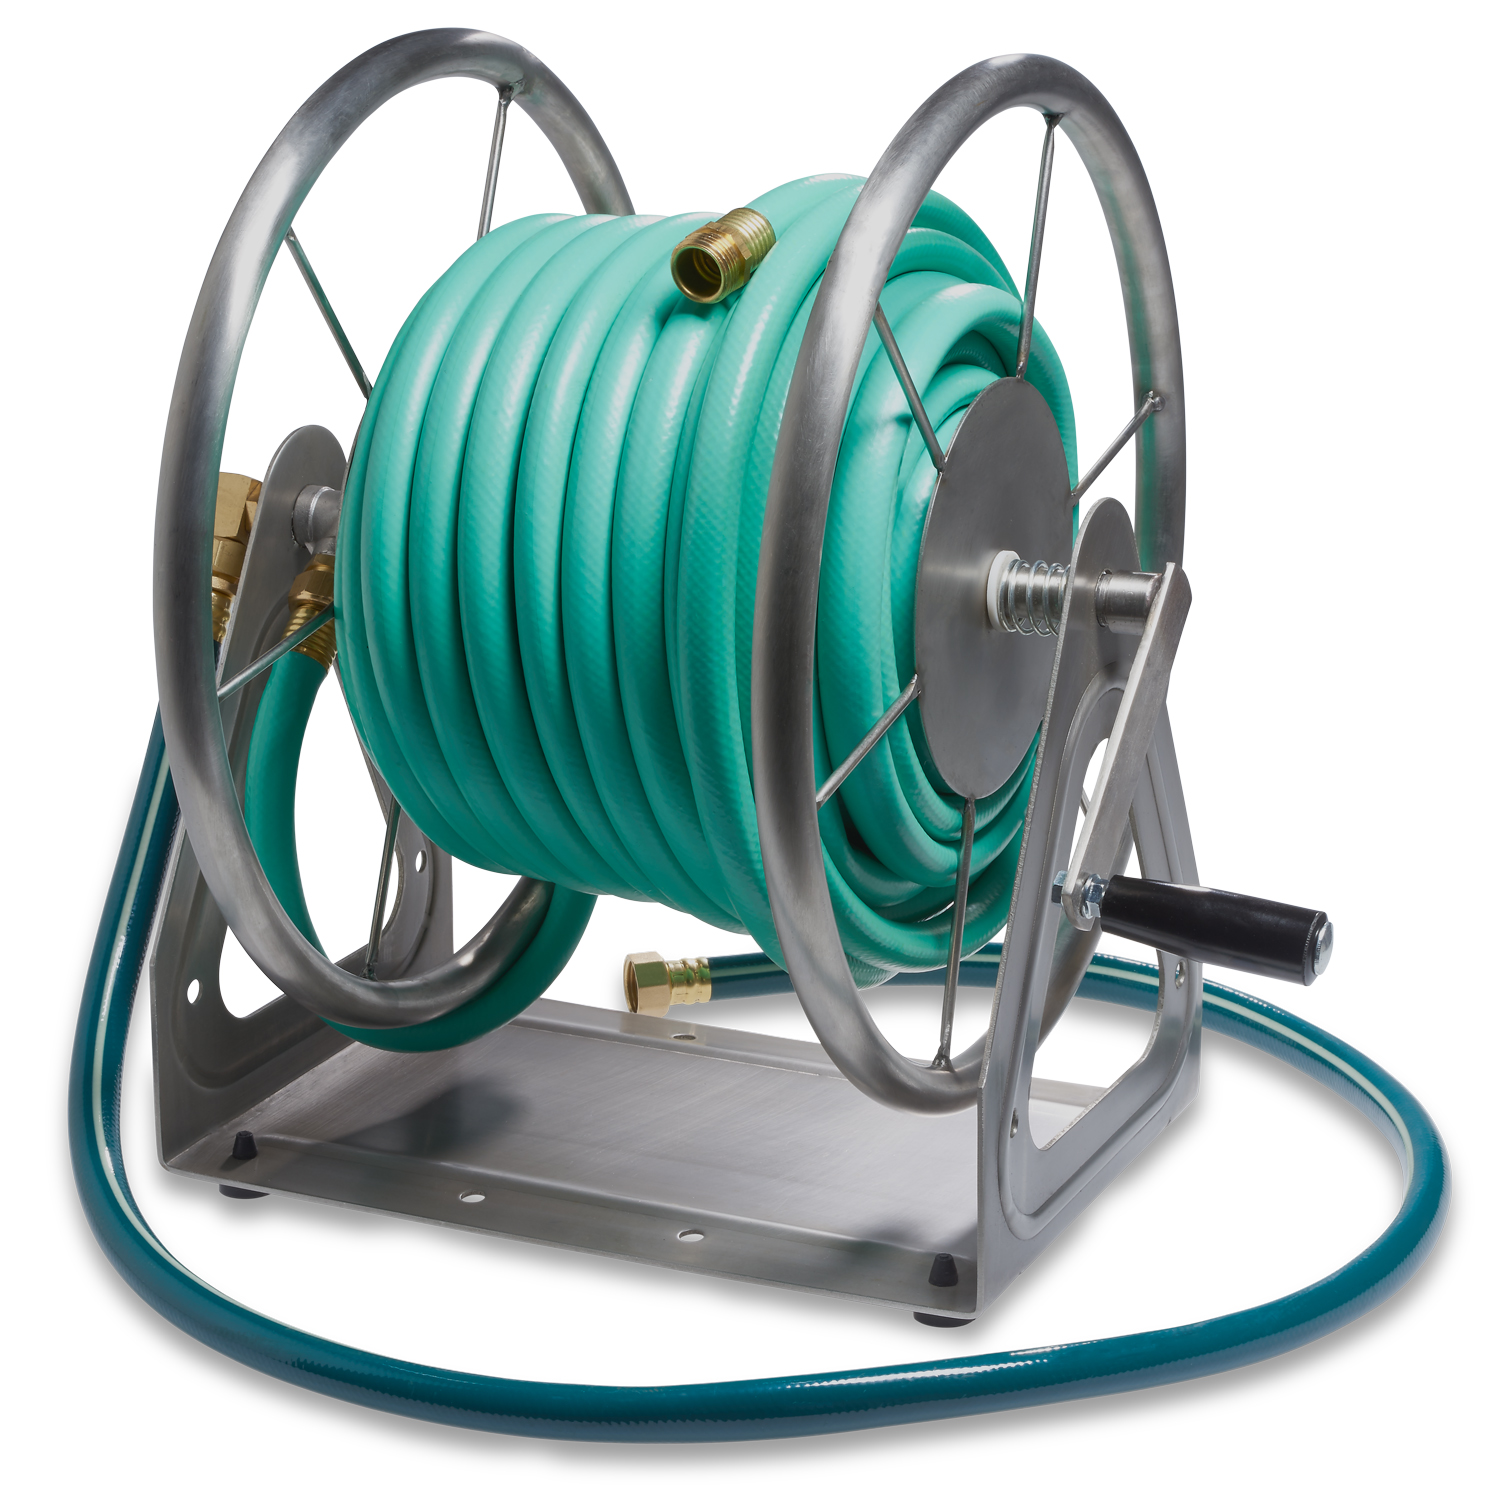 703-S2 MULTI-PURPOSE STAINLESS HOSE REEL